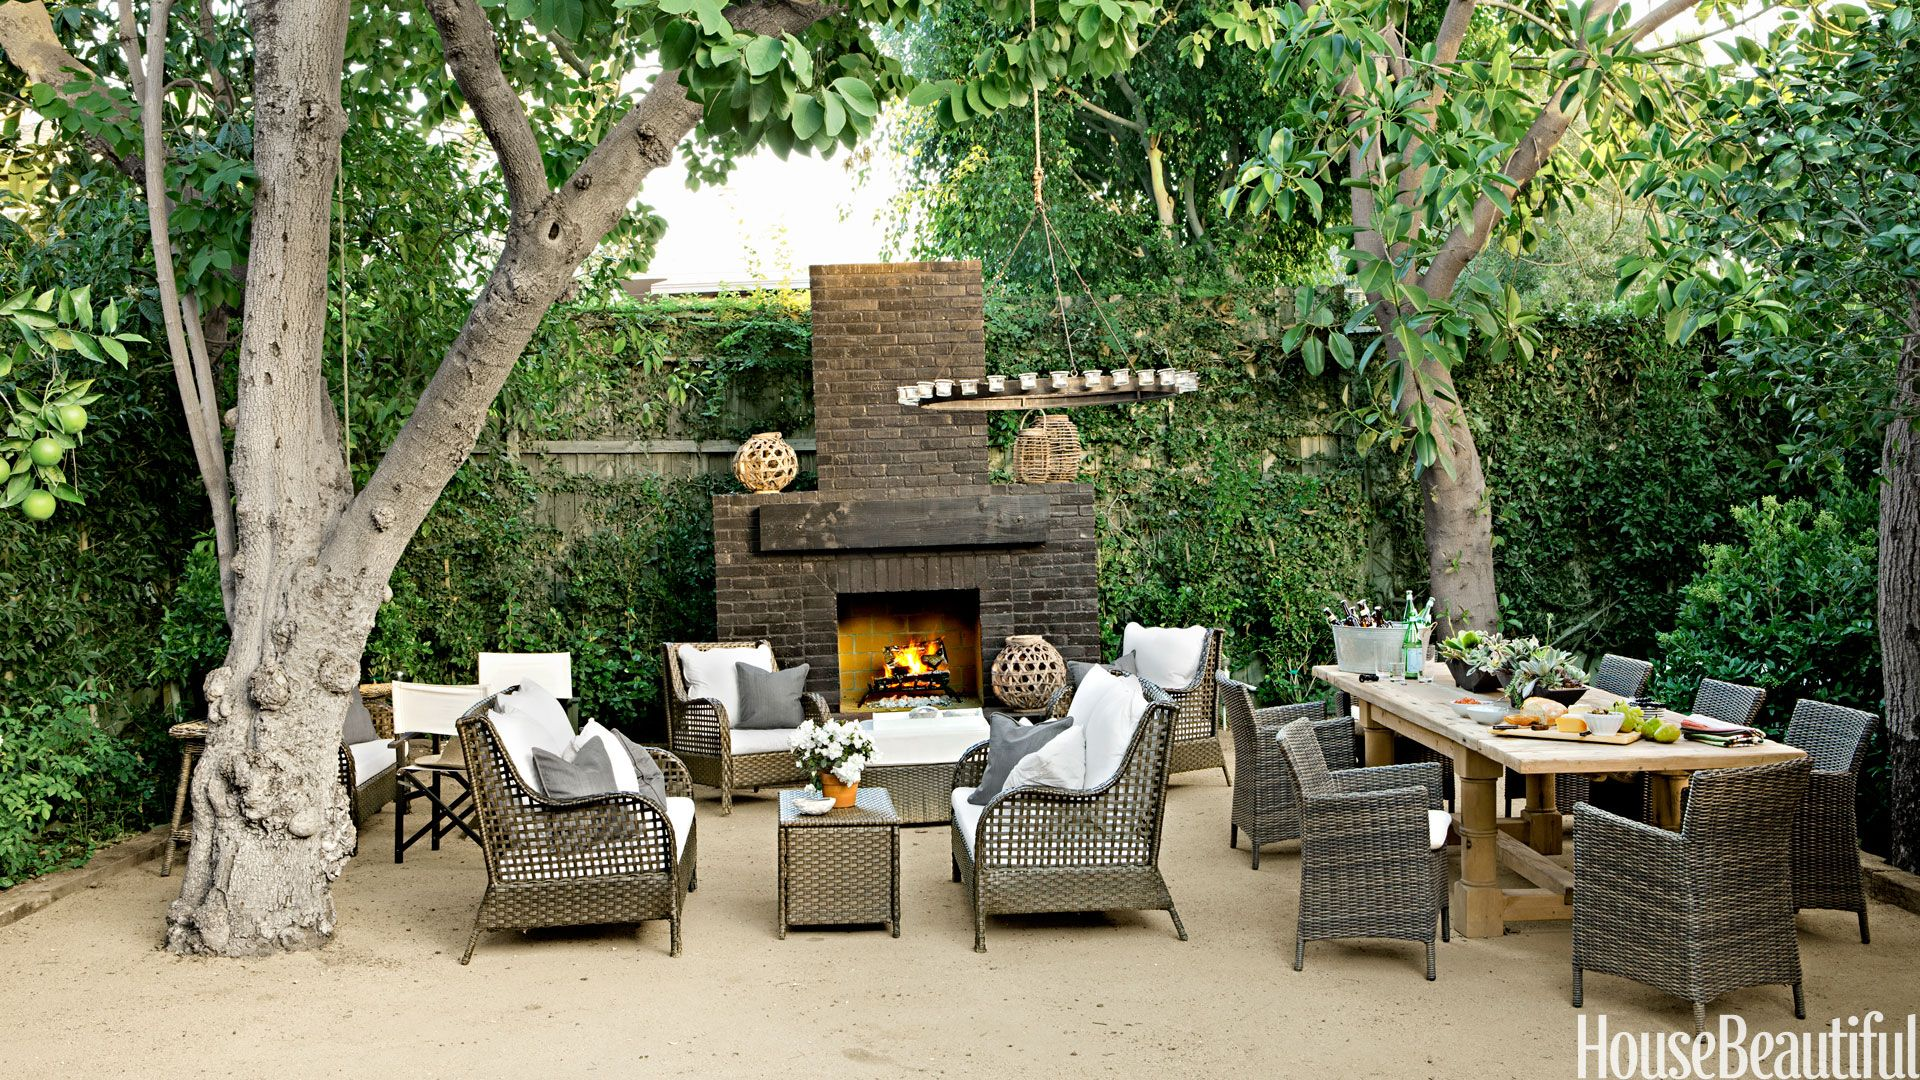 30 Best Patio Ideas for 2018 - Outdoor Patio Design Ideas ... on Small Outdoor Fireplace Ideas id=15228